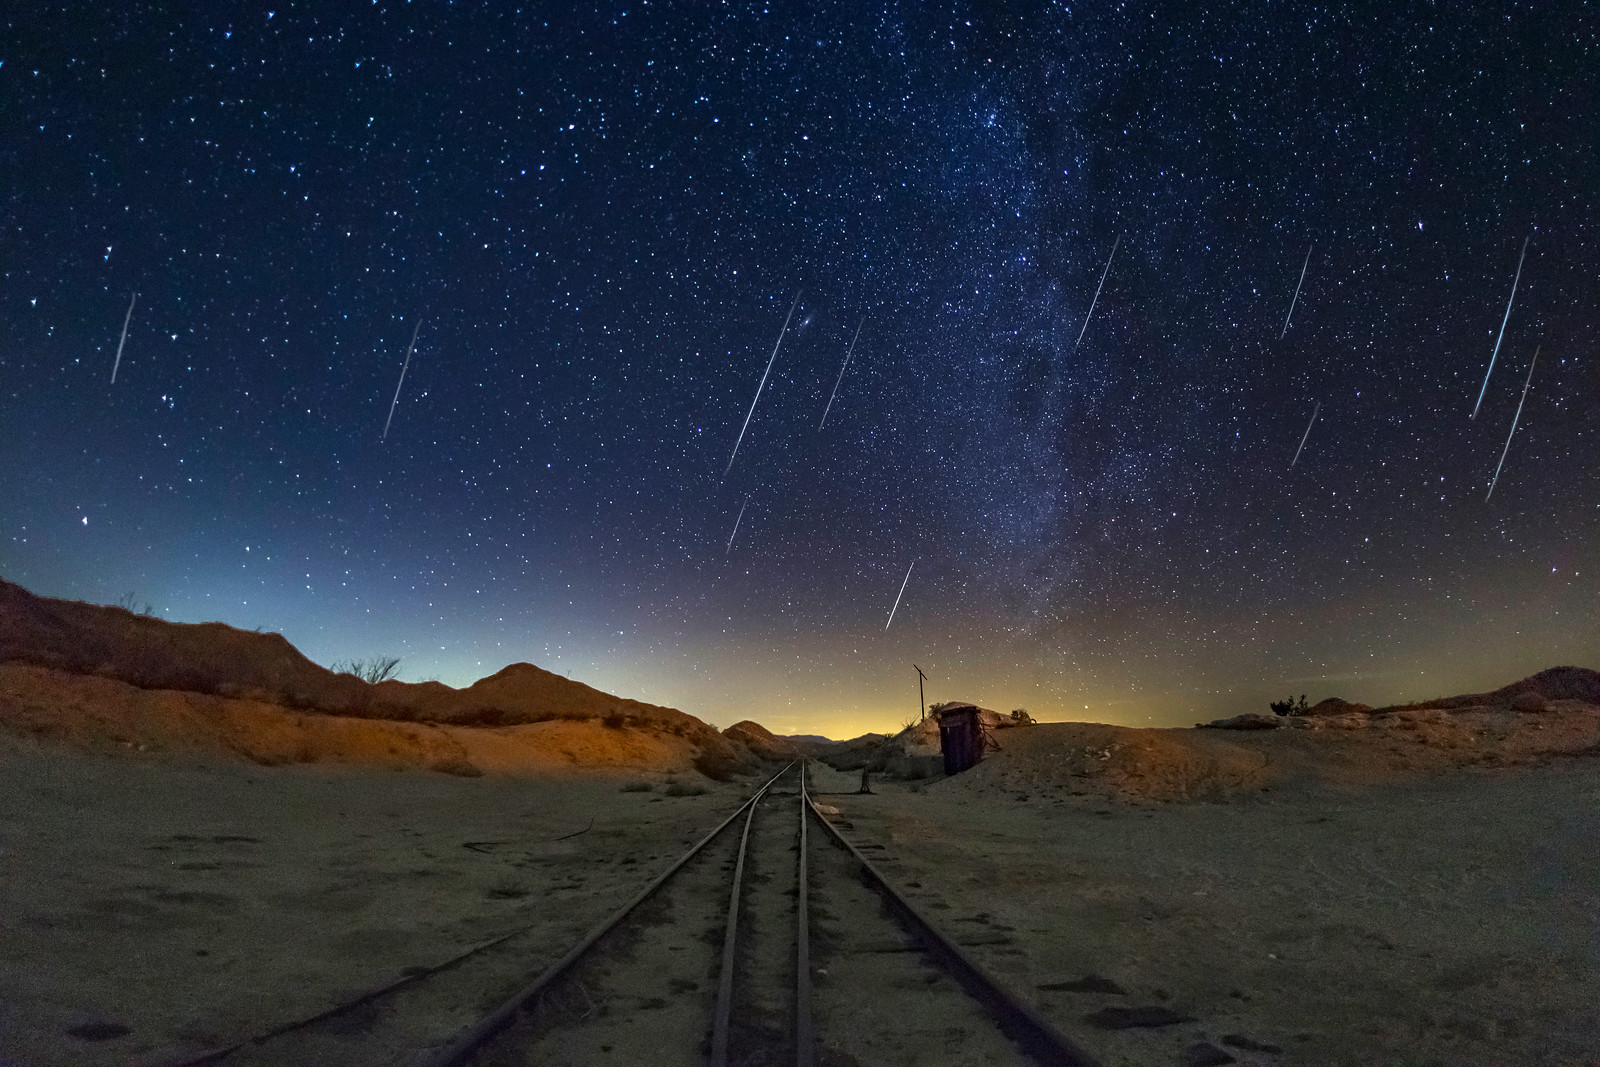 All Aboard the Geminids Express!